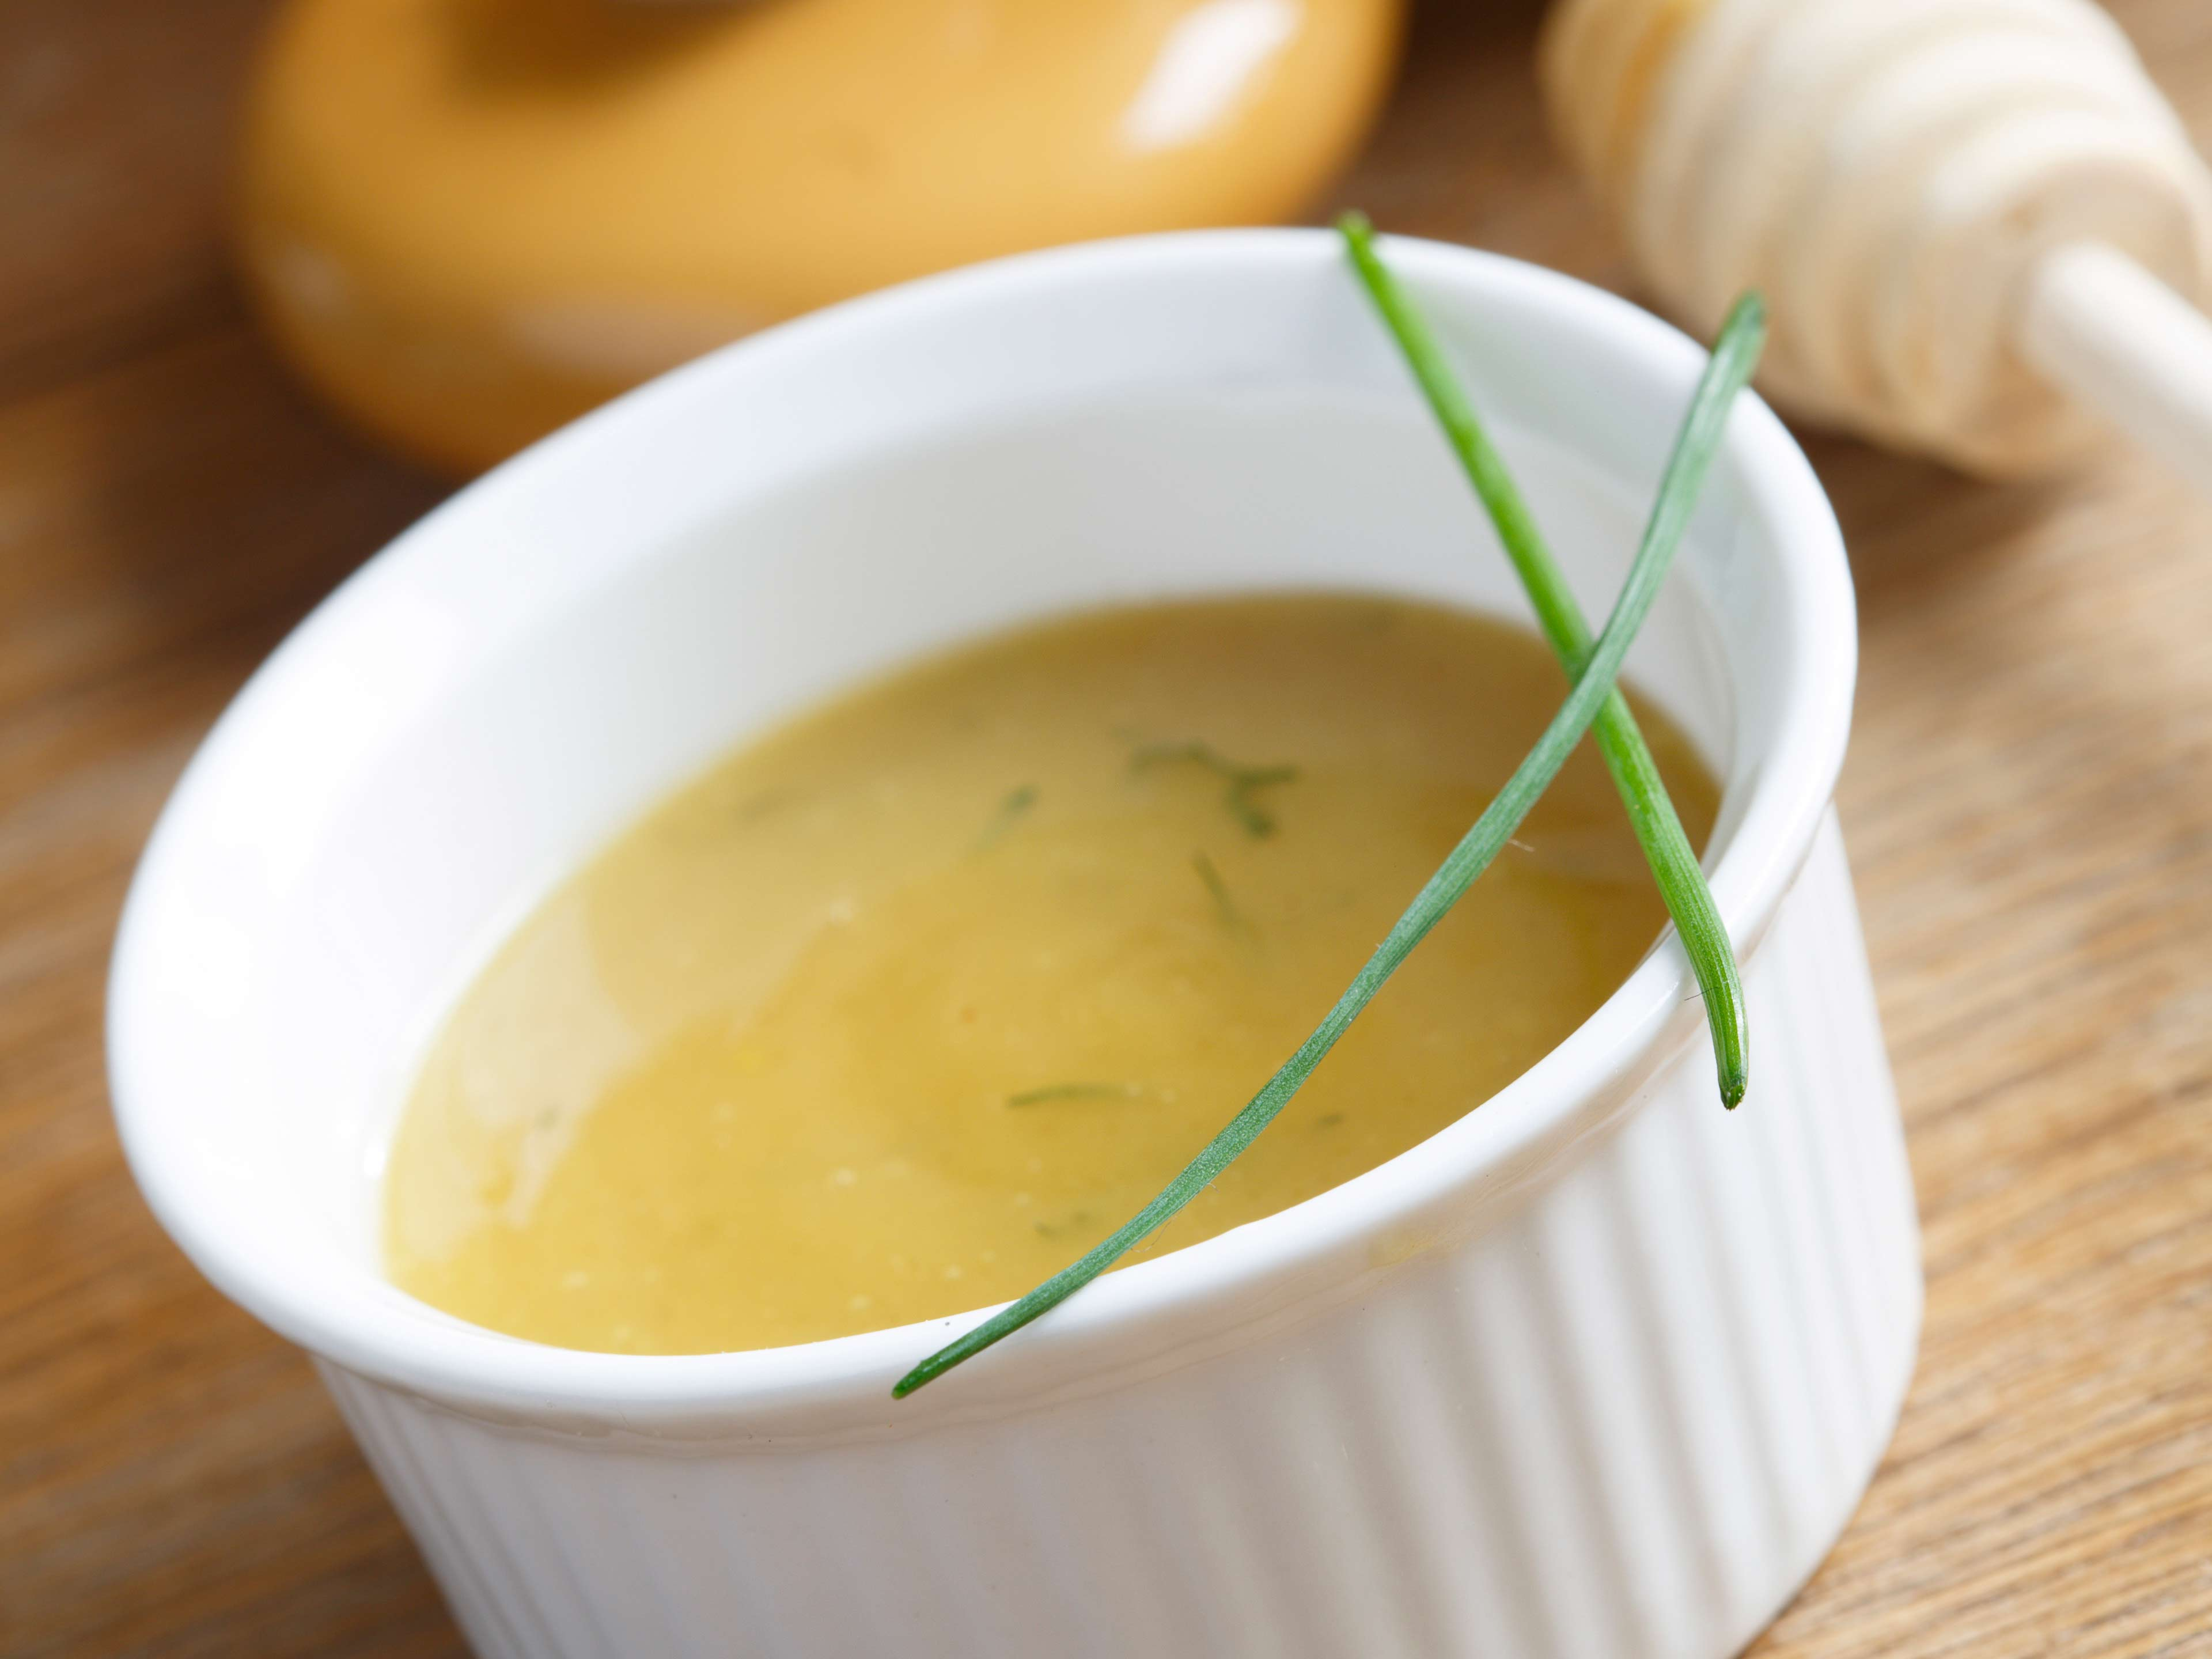 This honey mustard sauce is healthy, delicious and easy to prepare.